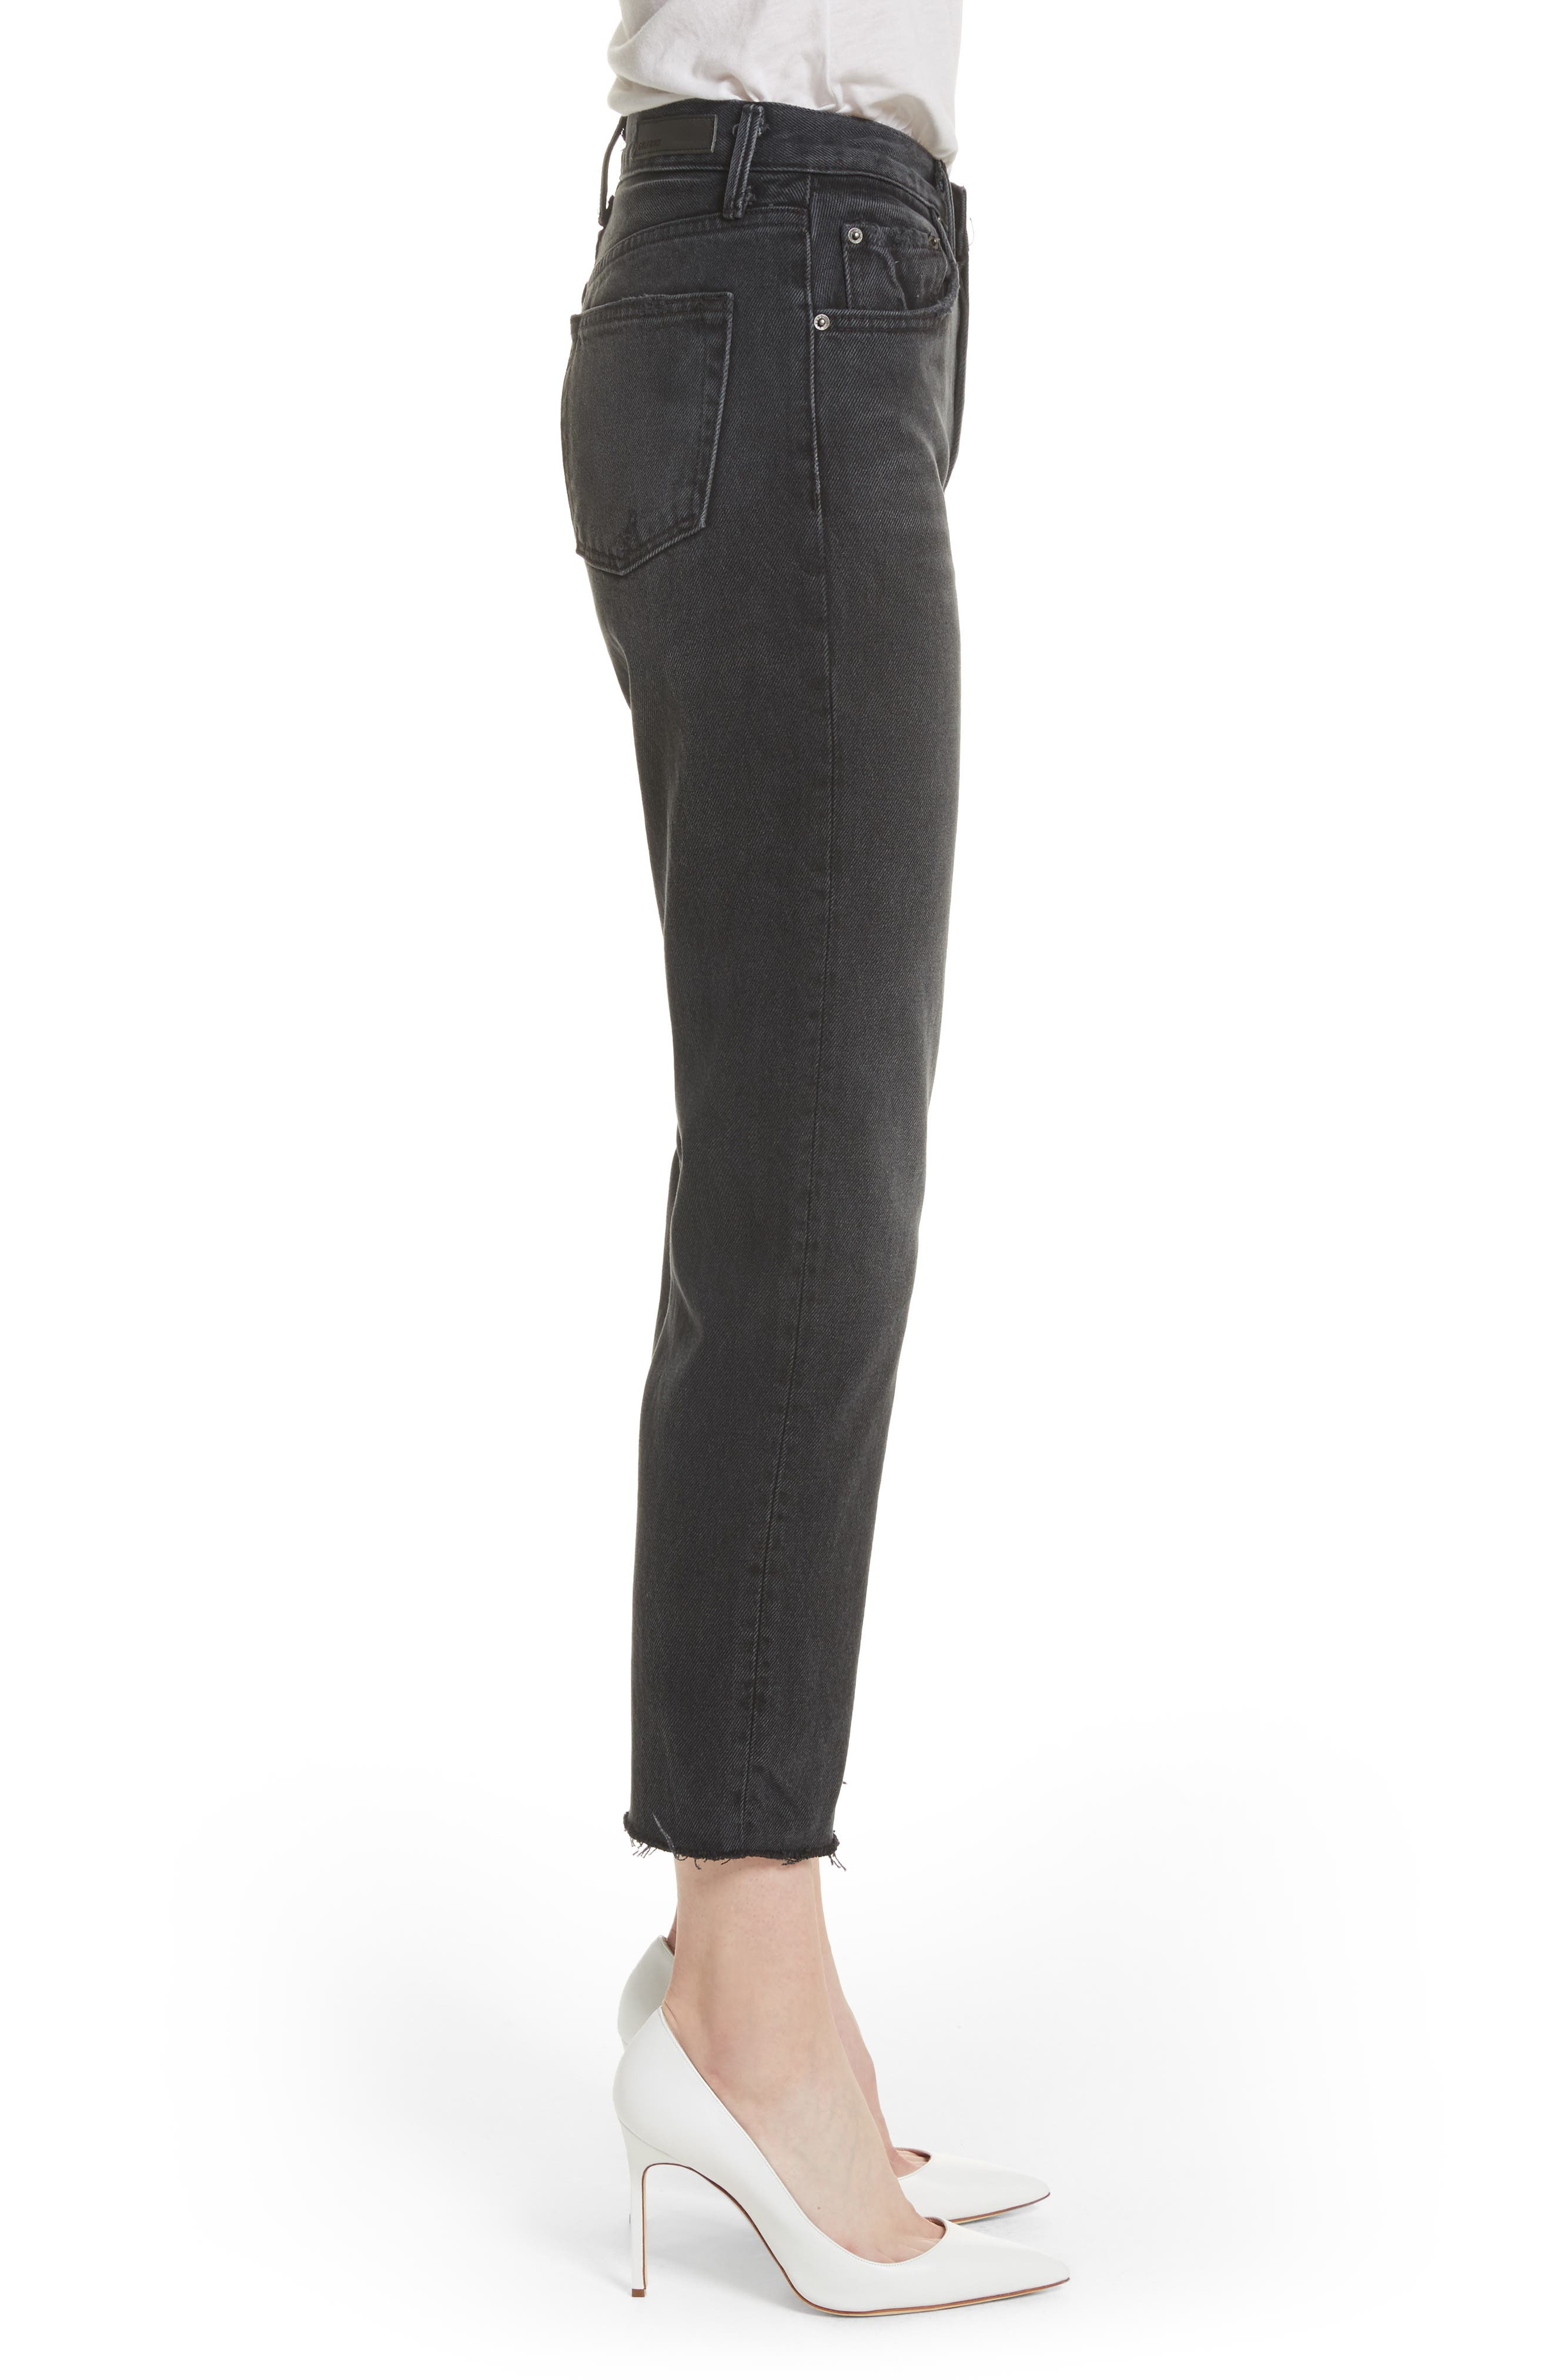 Helena Rigid High Waist Straight Jeans,                             Alternate thumbnail 3, color,                             PROUD MARY